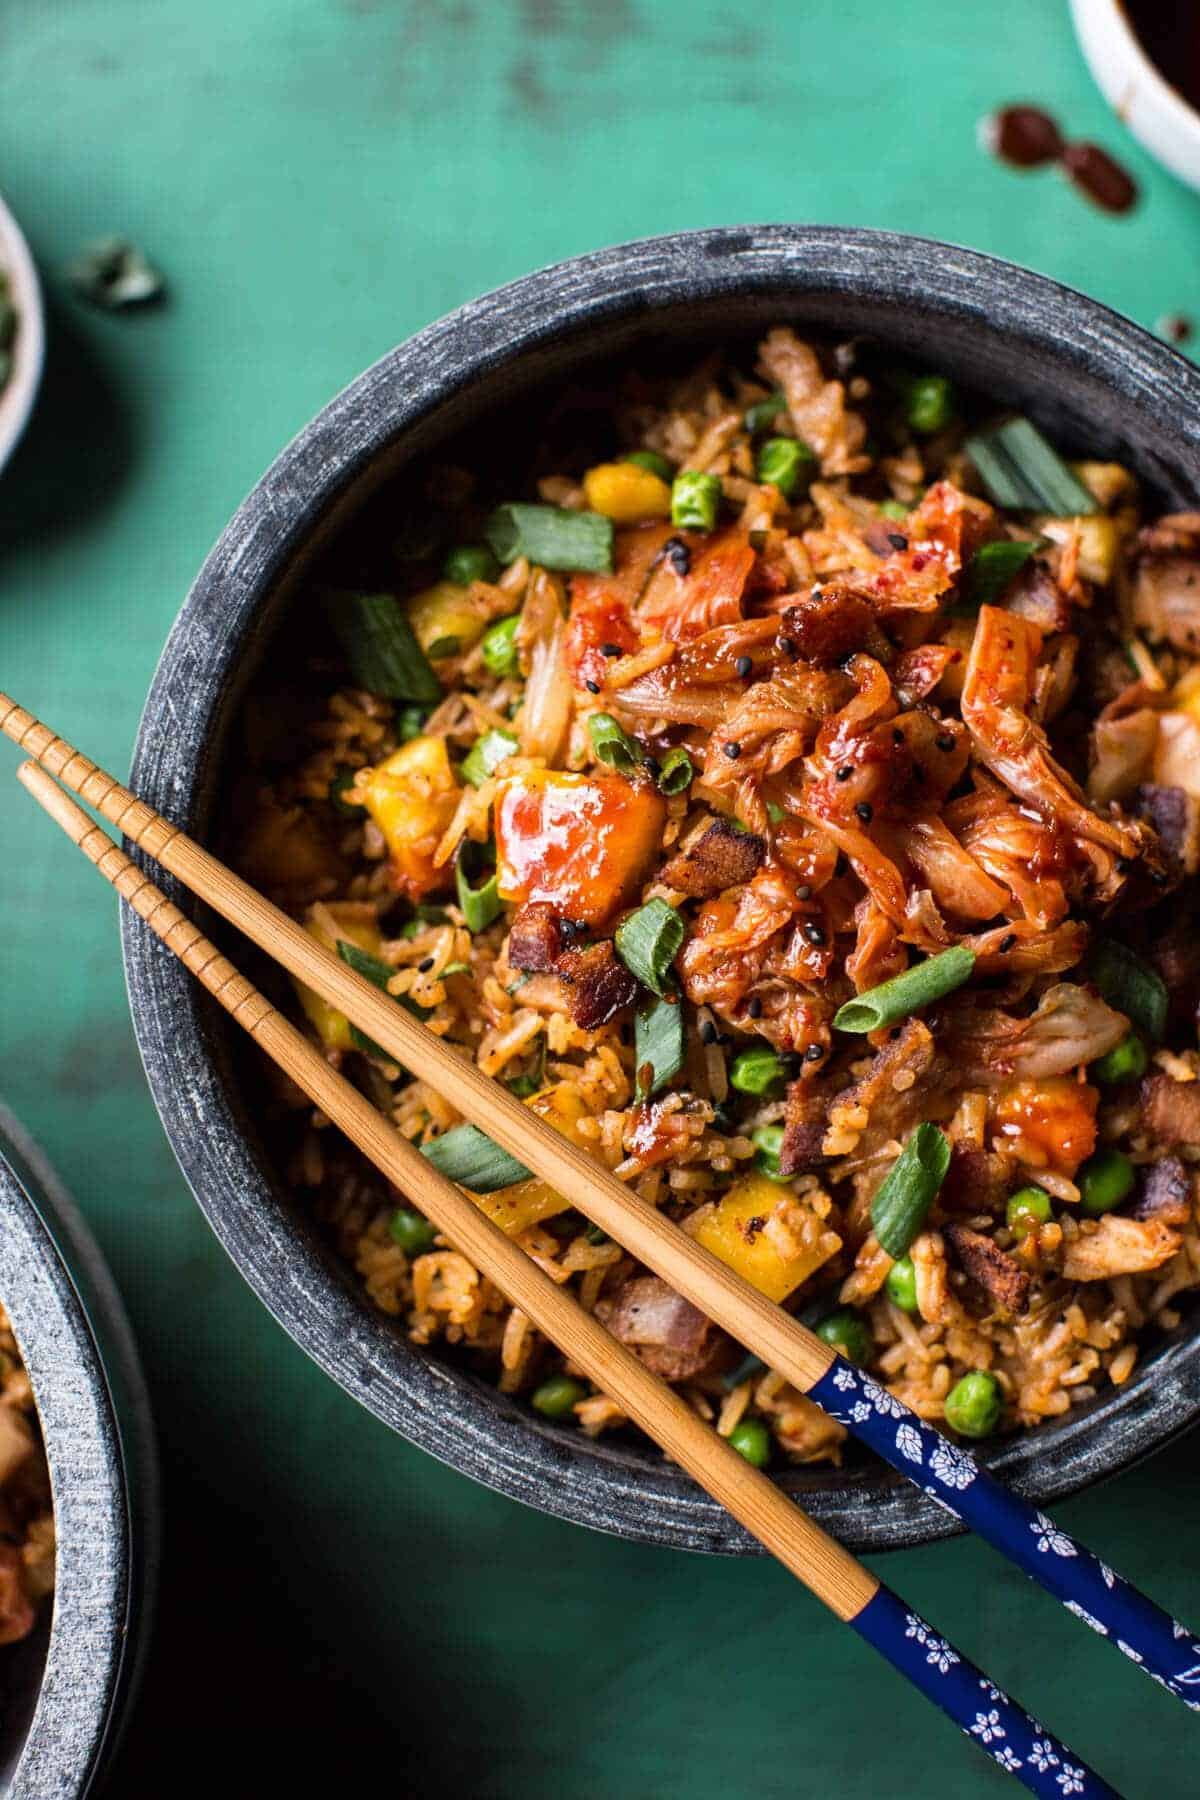 , so not ALL of the good things, but a lot of them. This fried rice ...